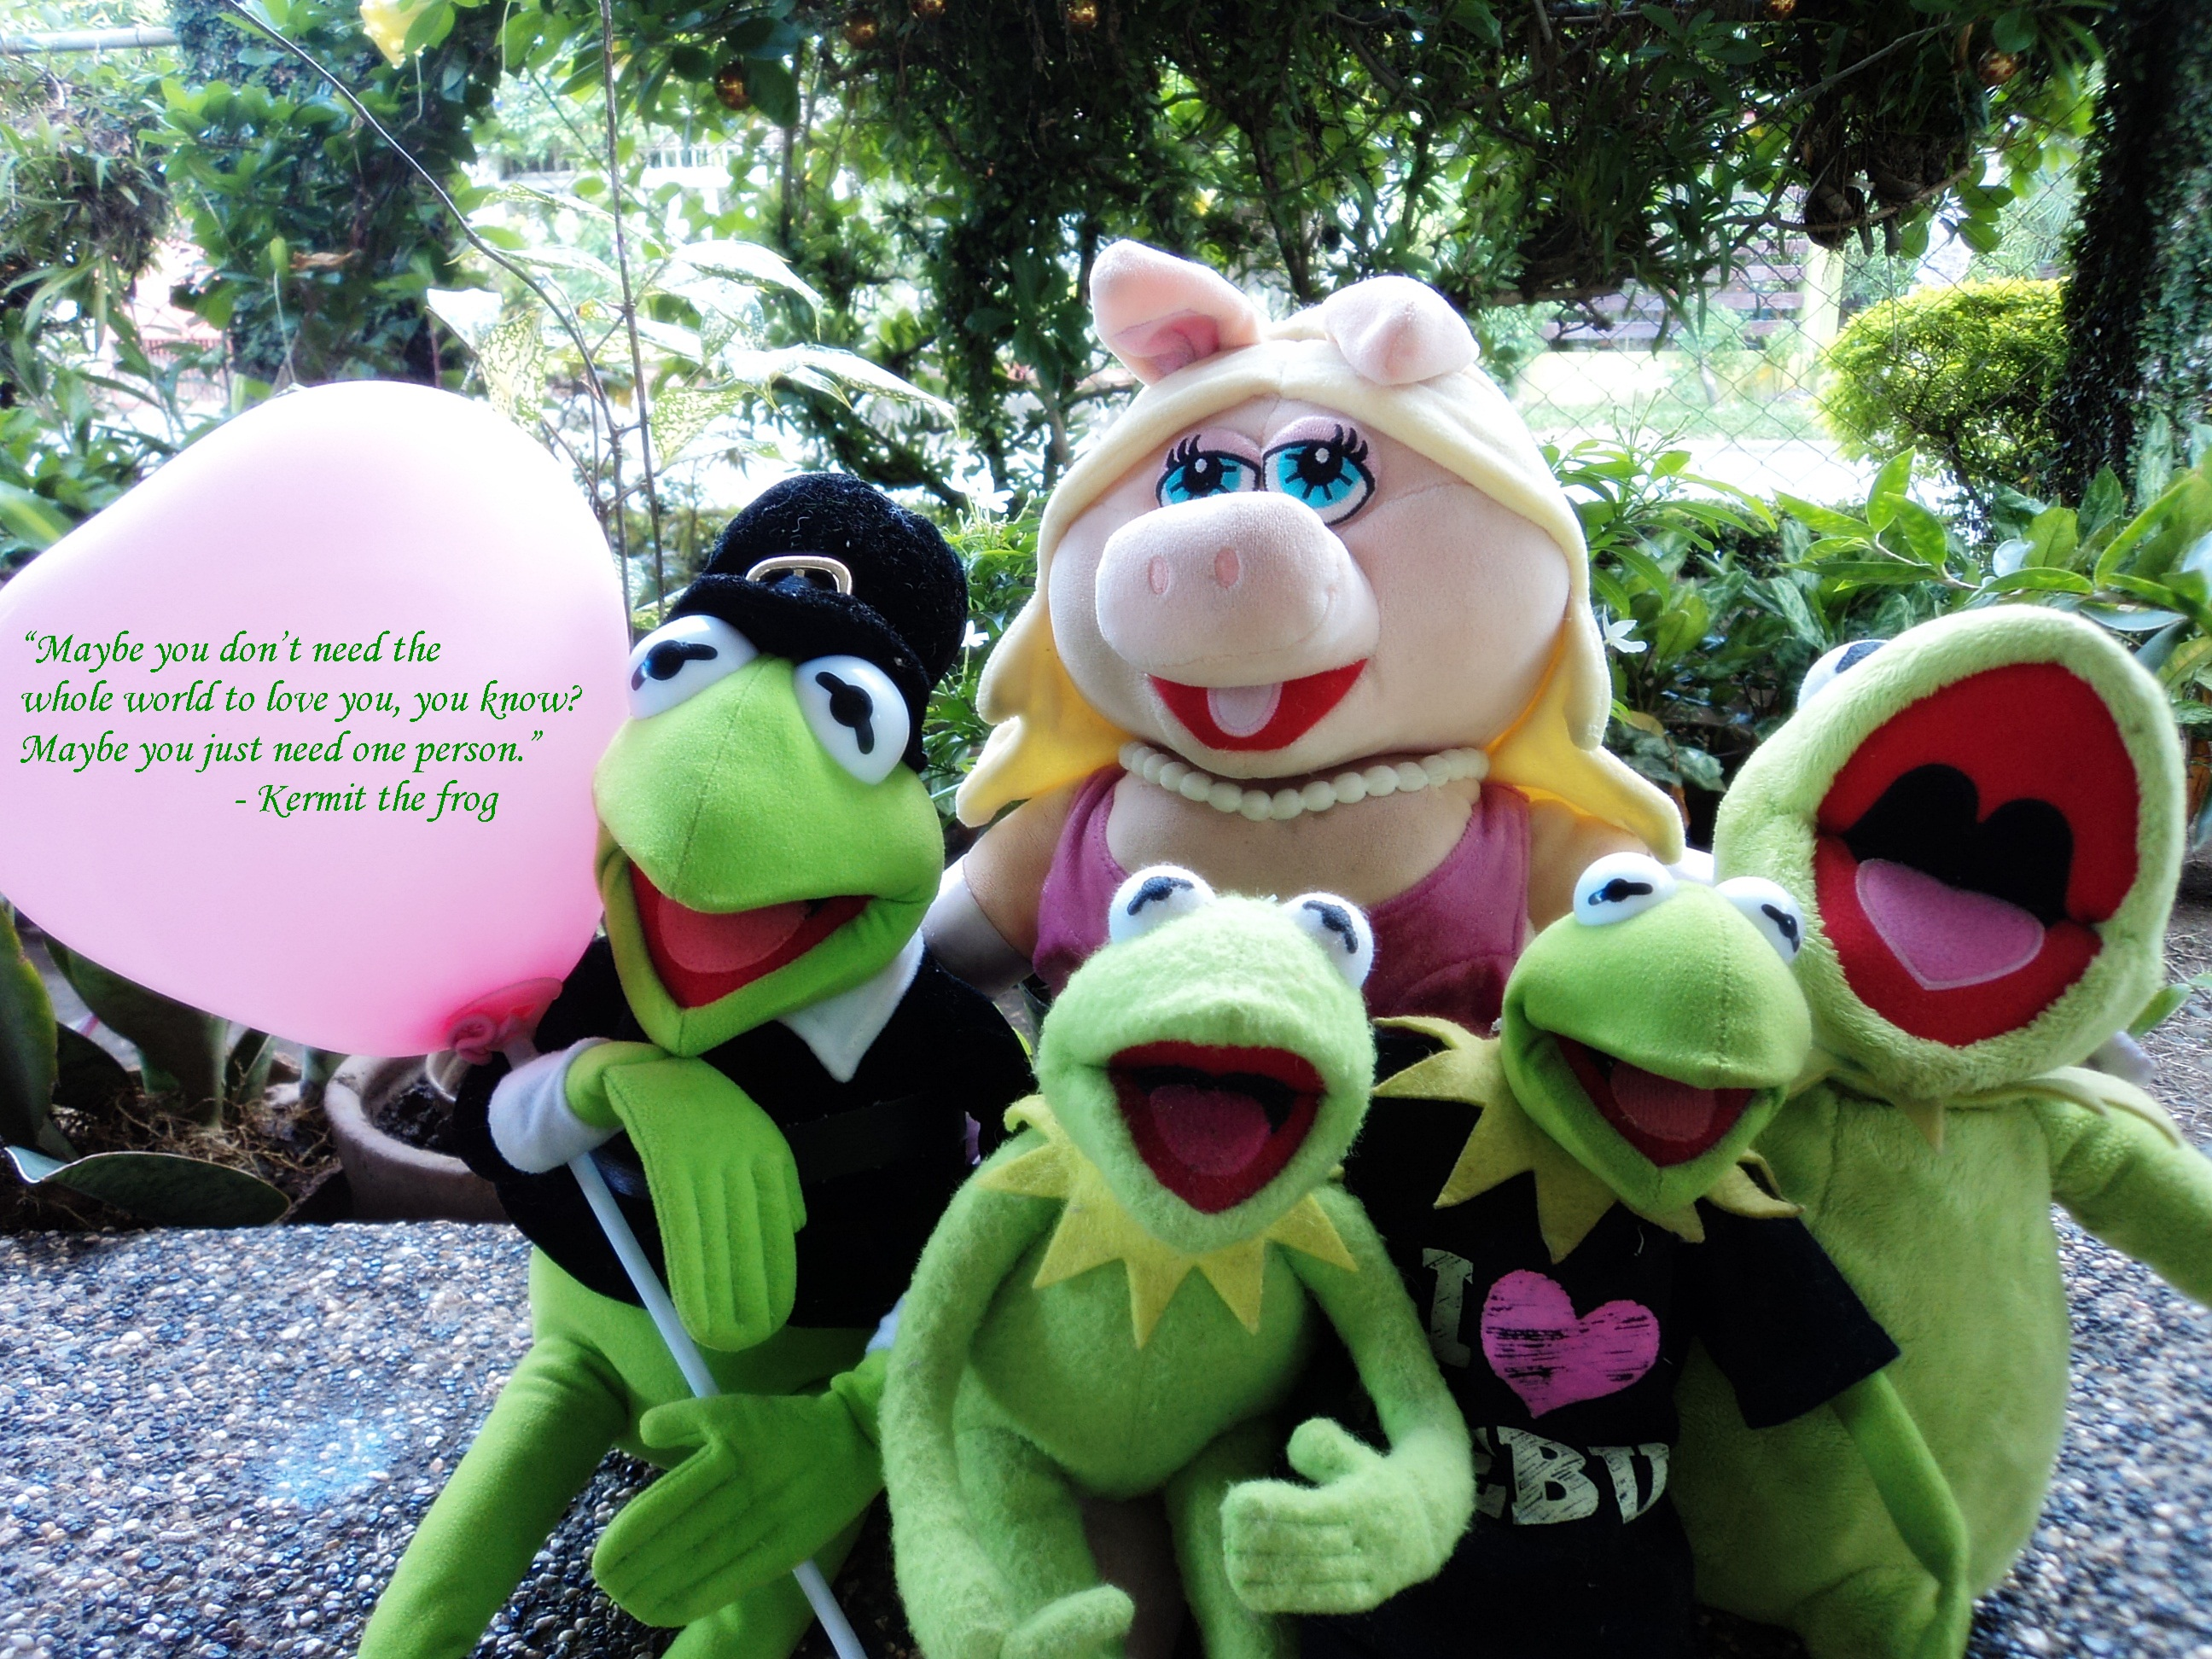 Kermit the Frog and Miss Piggy - Kermit the Frog Photo